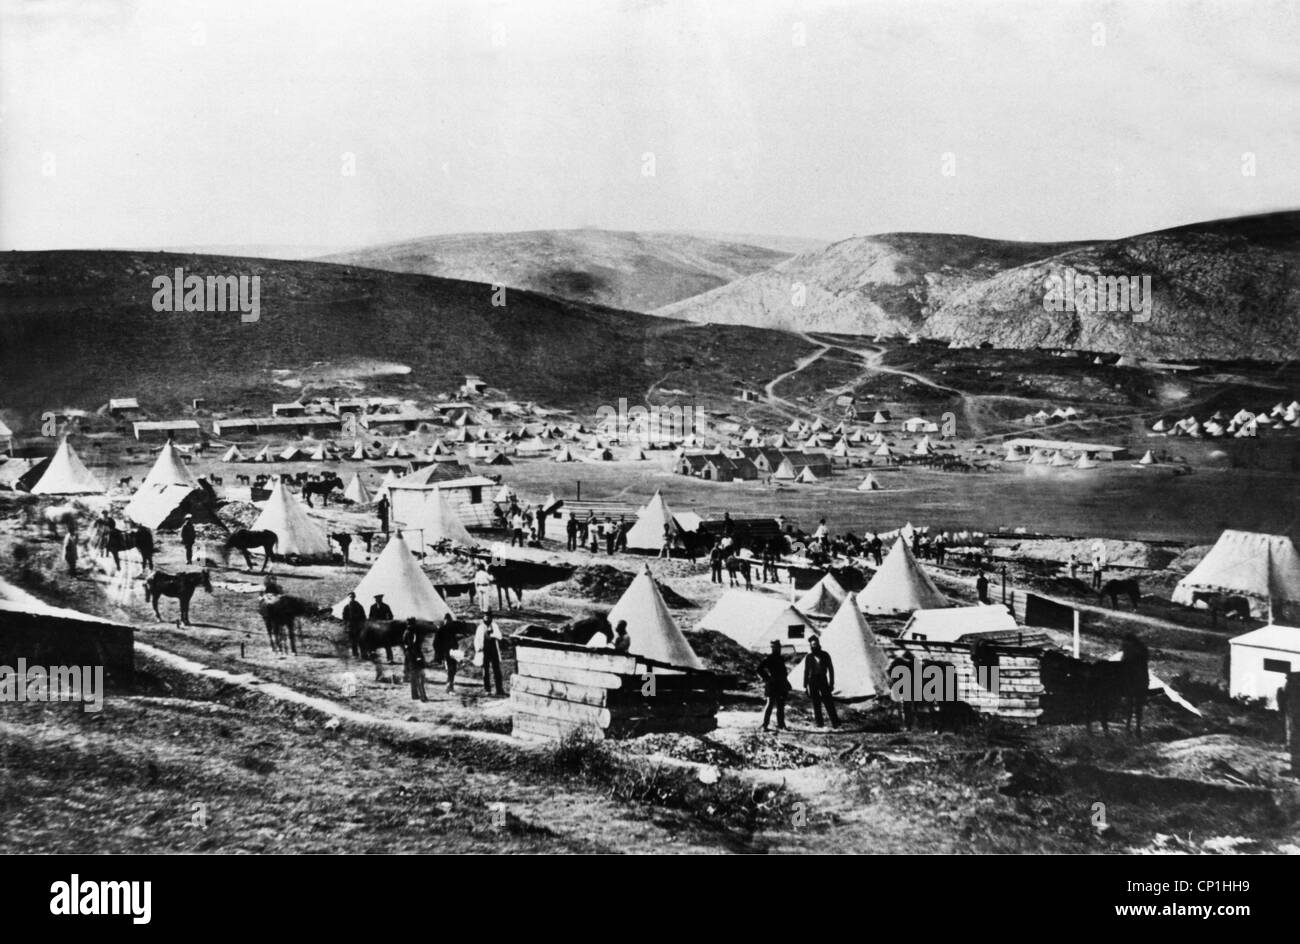 Crimean War 1853 - 1856, siege of Sevastopol 17.10.1854 - 9.9.1855, camp of the British 5th Dragoon Guards, photograph - Stock Image